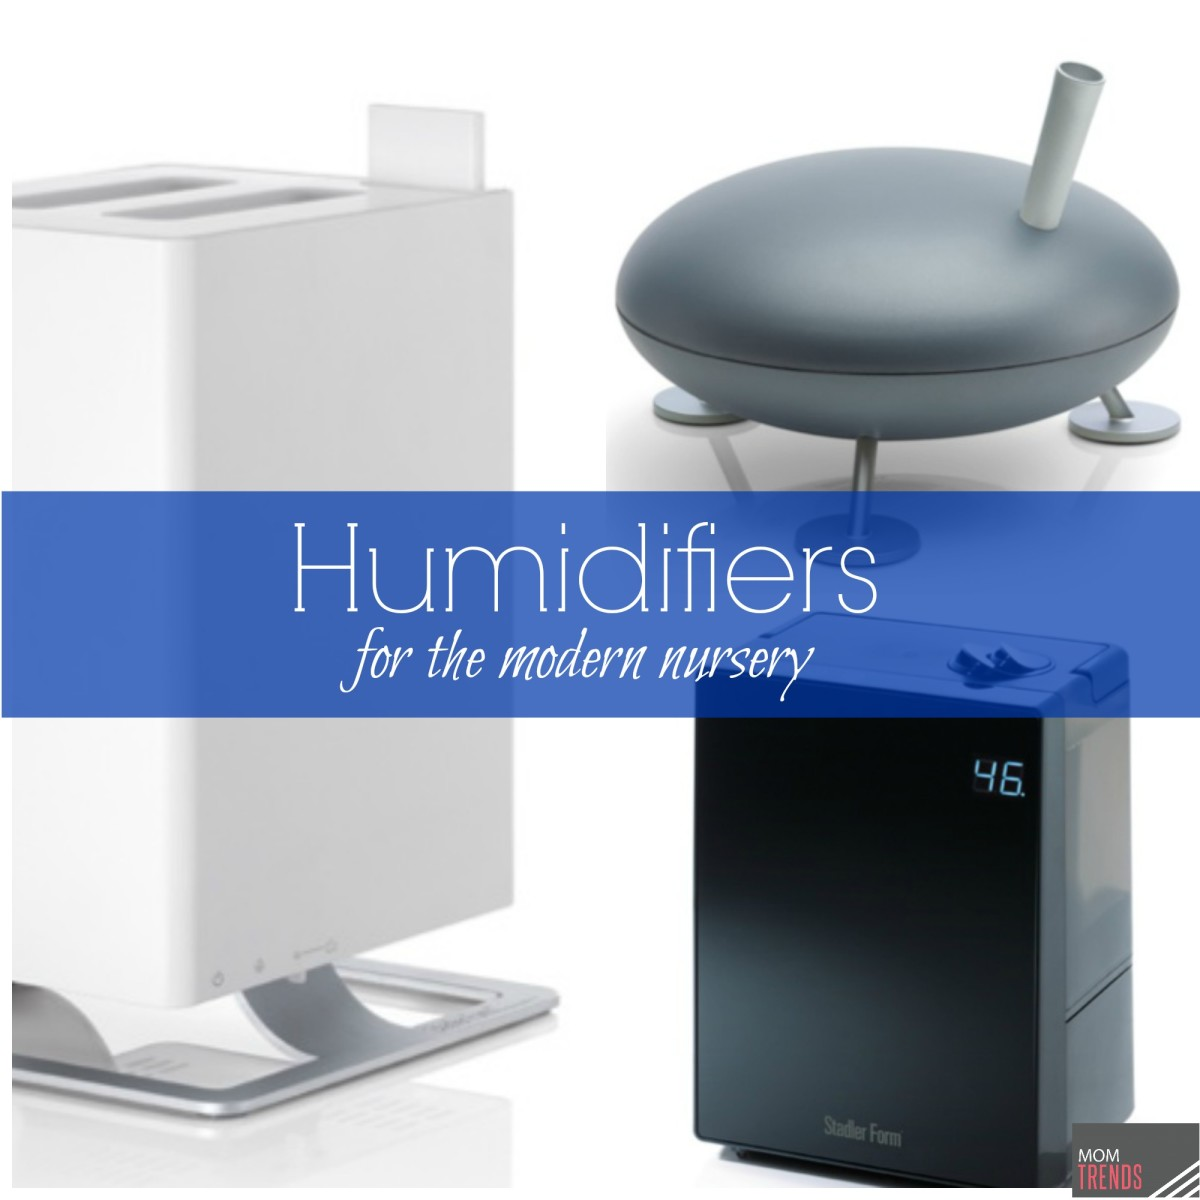 Modern Humidifiers from Stadler Form